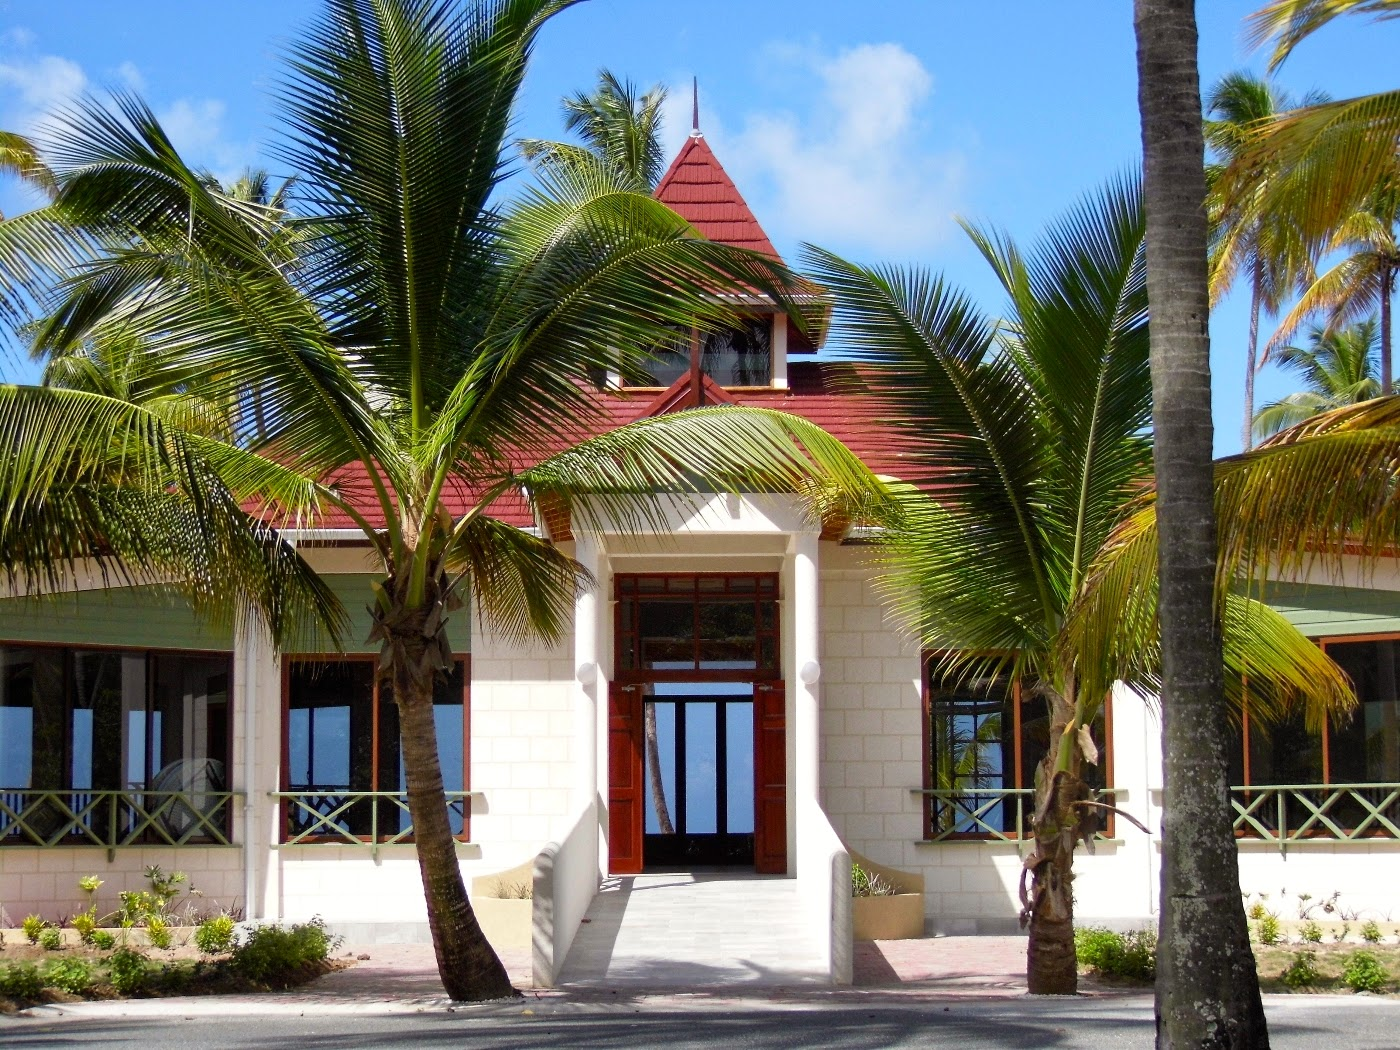 Heritage Pavilion Pigeon Point Tobago Wedding Venue